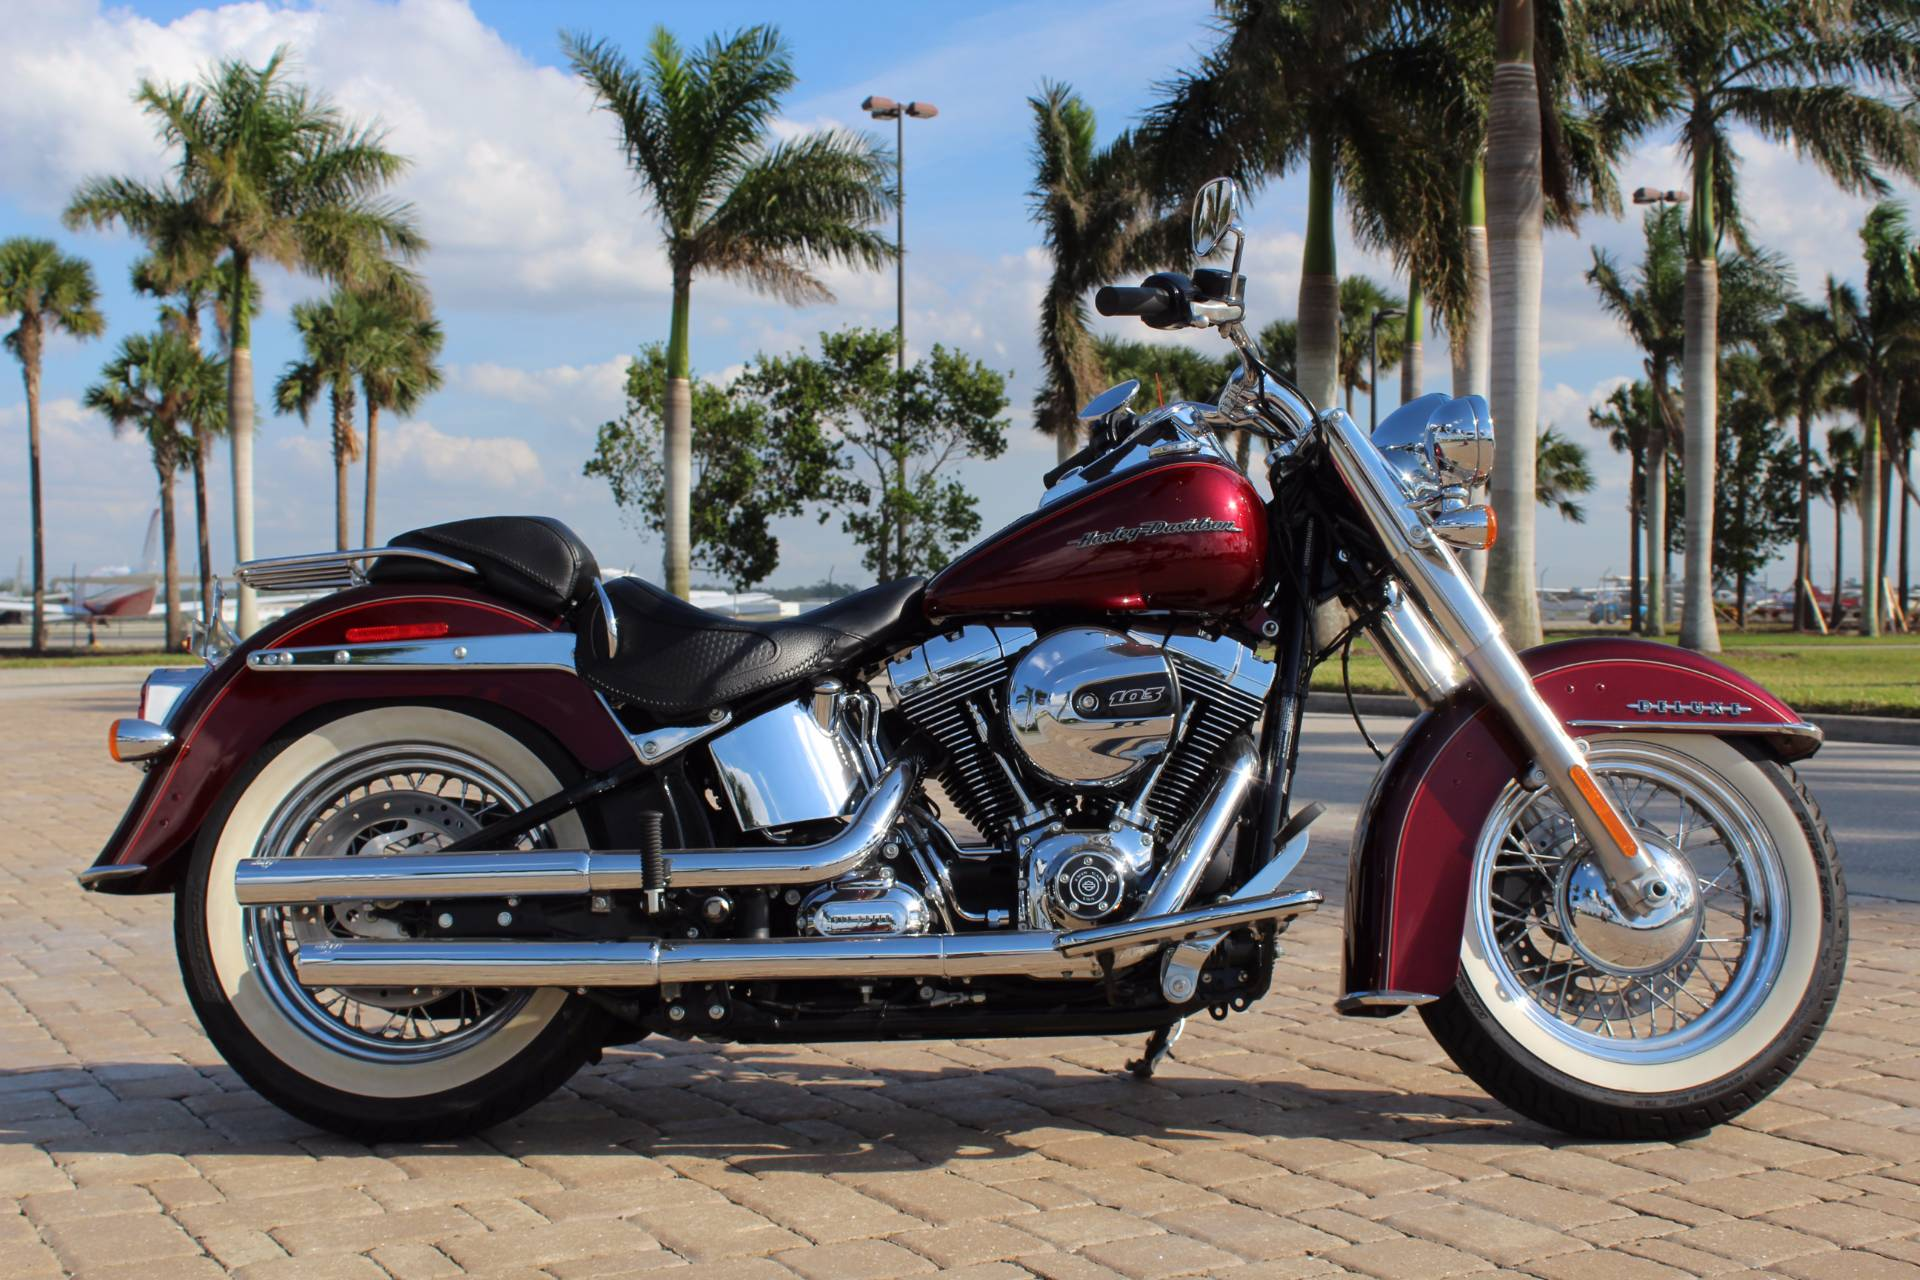 Harley Softail 2016 Harley Davidson Softail Deluxe